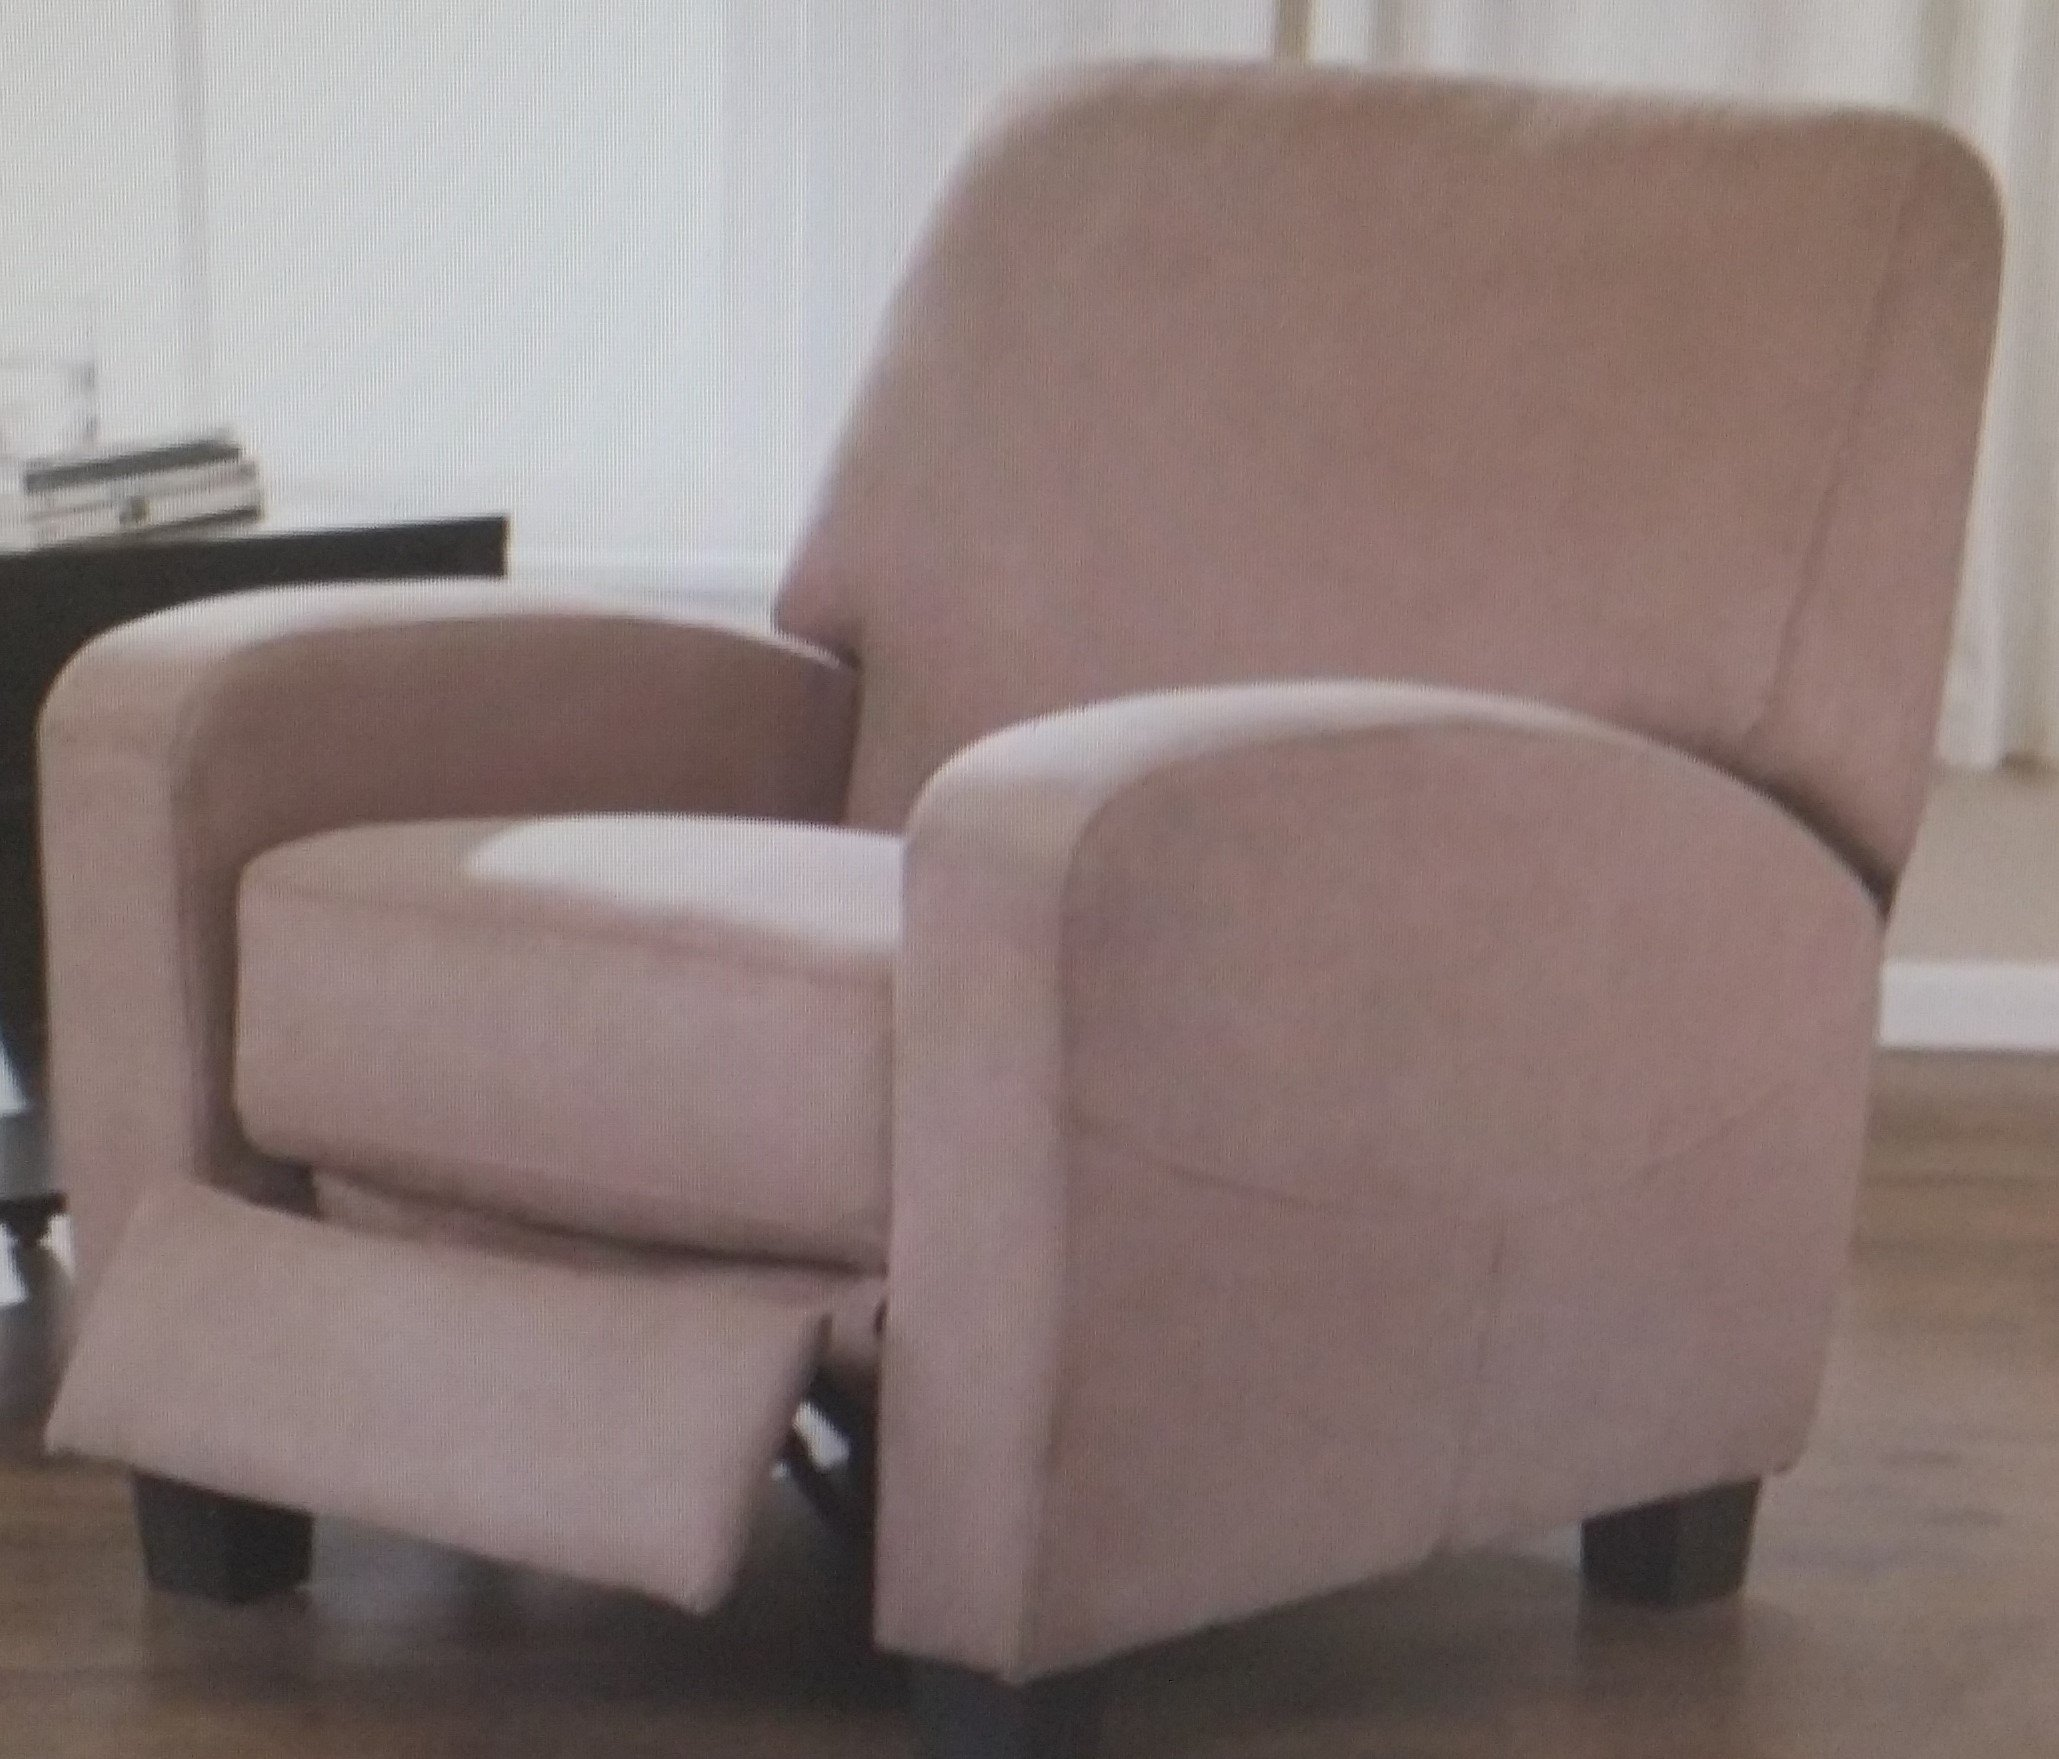 Mainstays Home Theater Recliner, Multiple Colors (Pink)